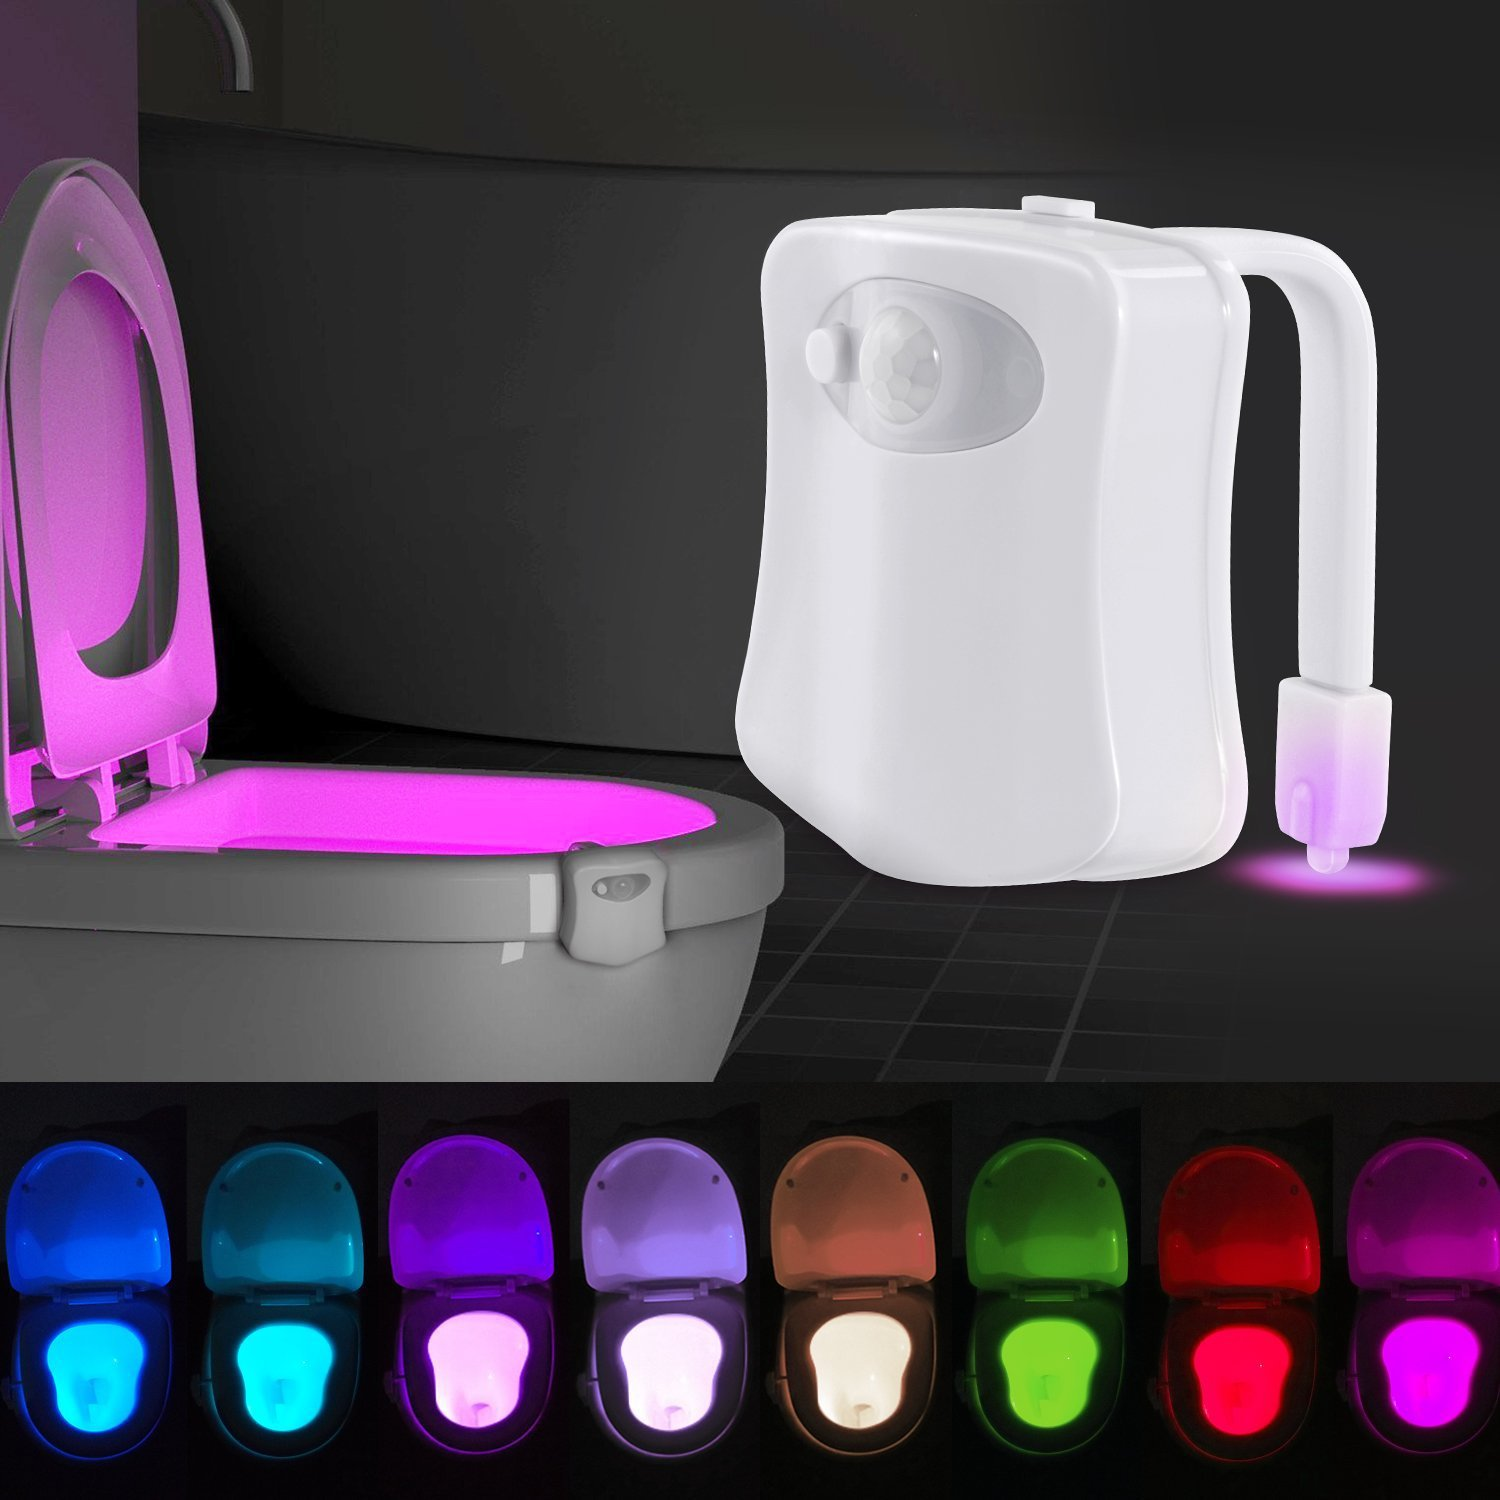 The Toilet Toilet Seat Led Night  Lightbody WC Motion Sensor Backlit Bathroom 8 Color Veilleuse For Kids Child